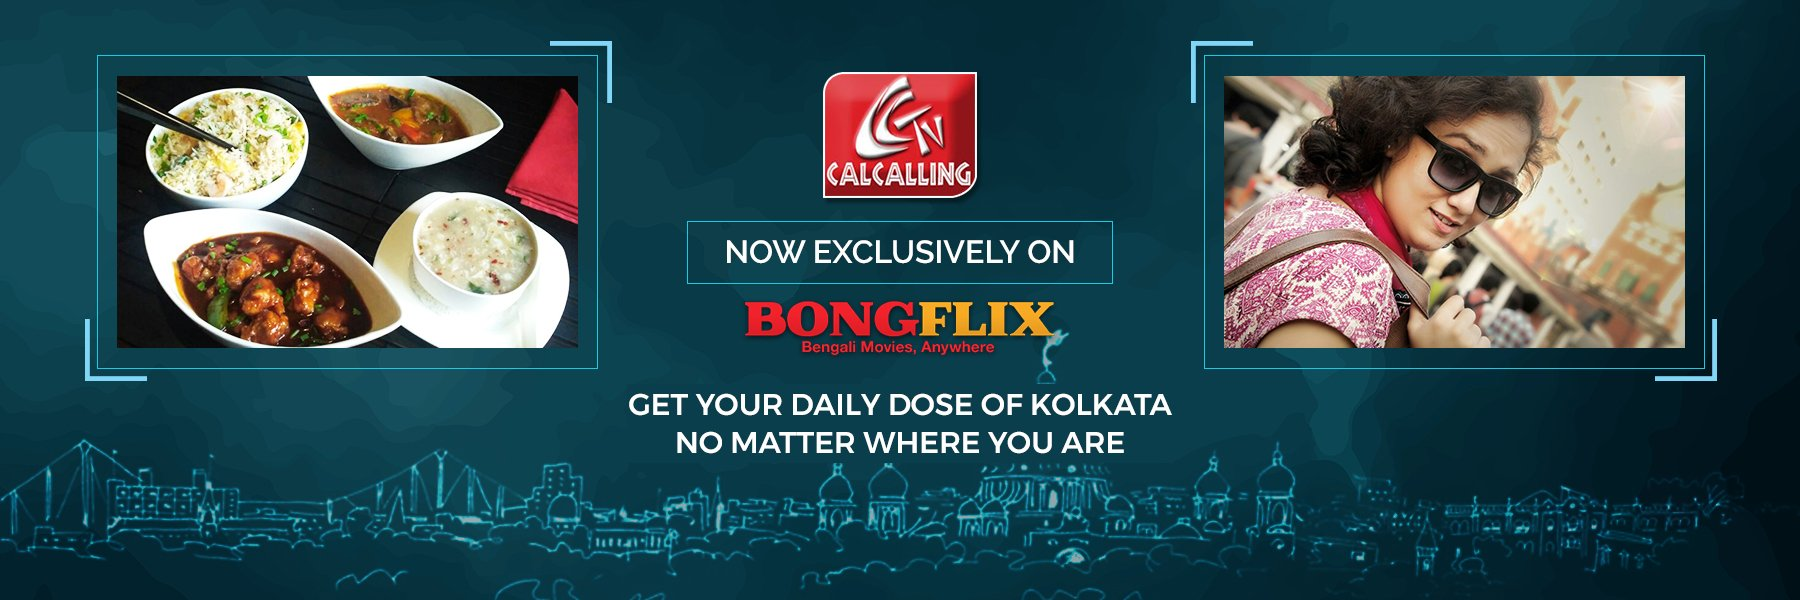 CalCallingTV Now Exclusively On BongFlix